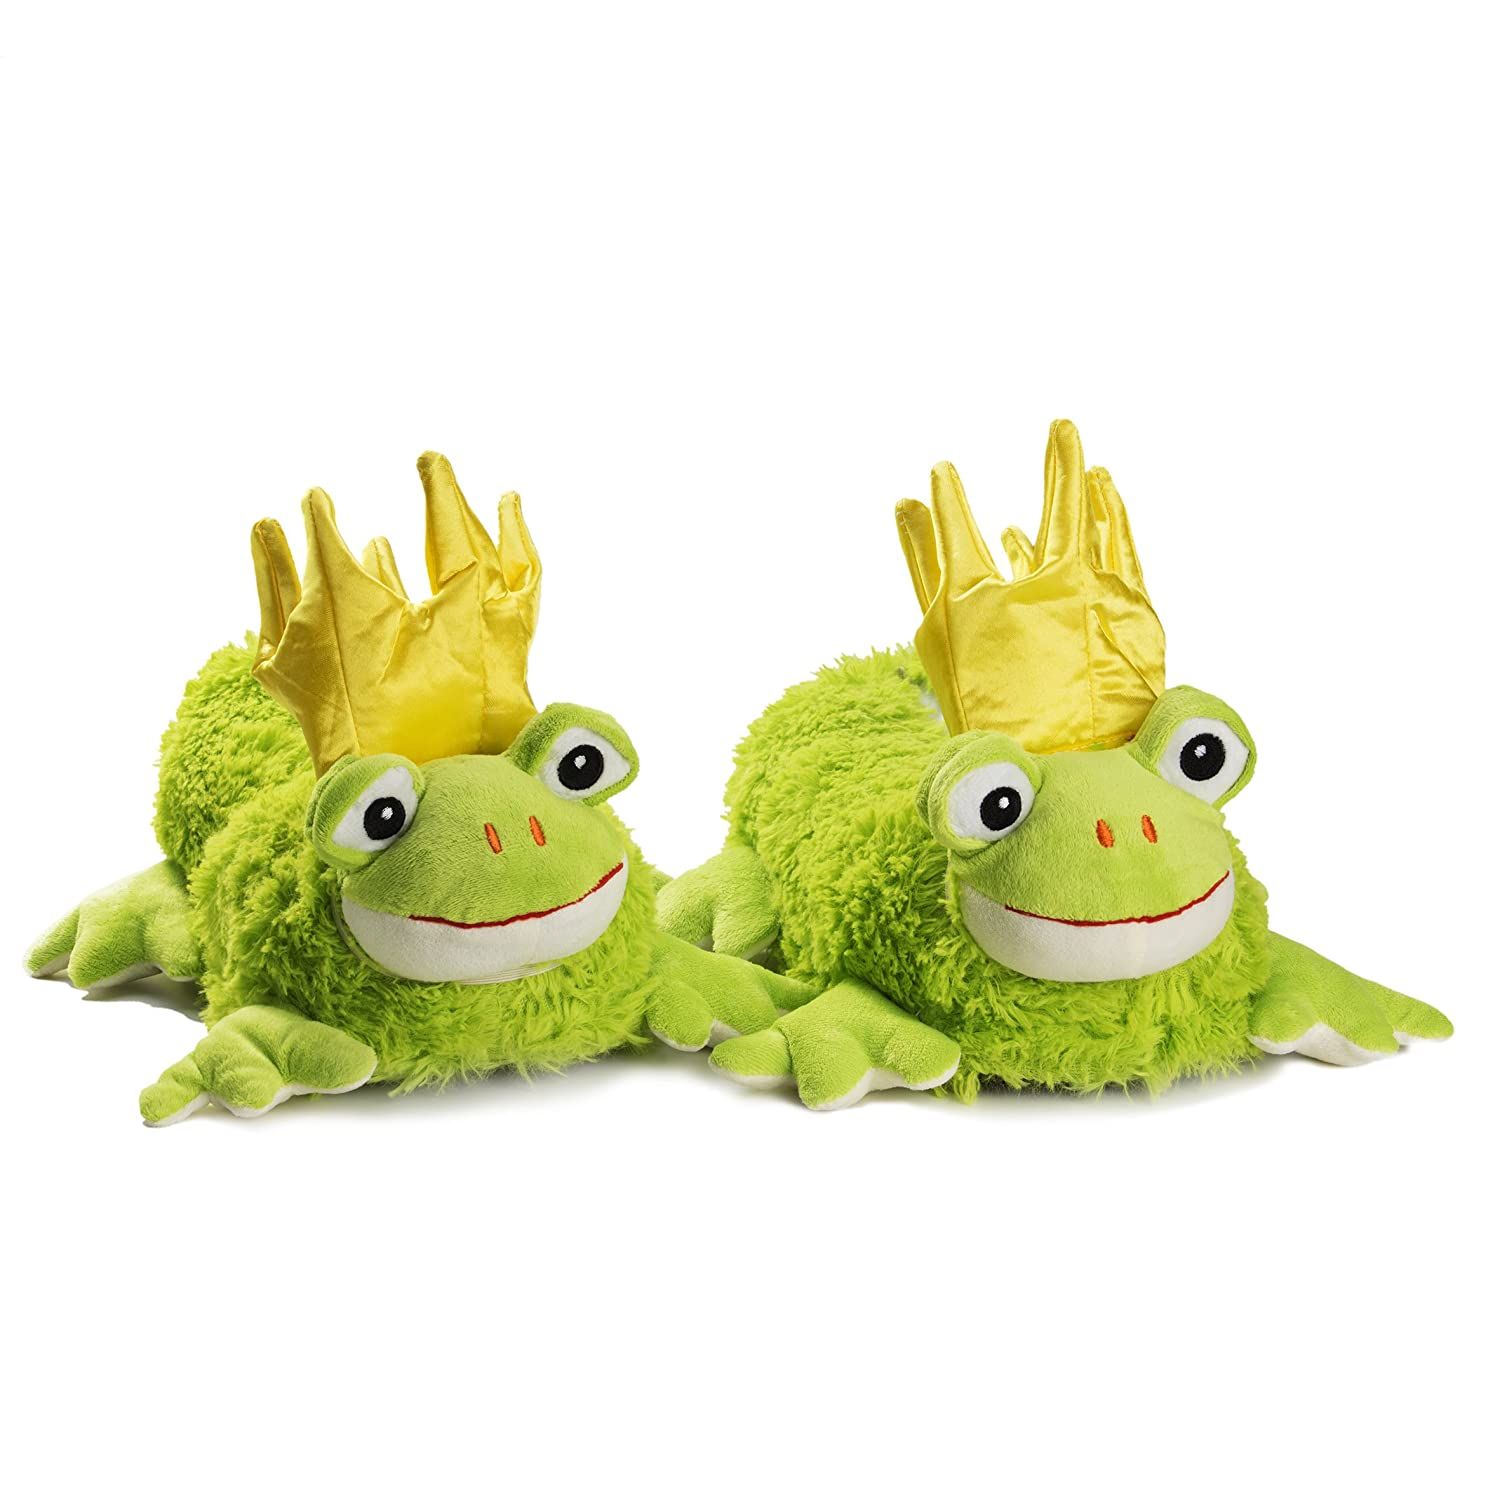 Frog Novelty Slippers Plush Animal for adults UK size 7-9 tested and certified for harmful substances N33pBDLte